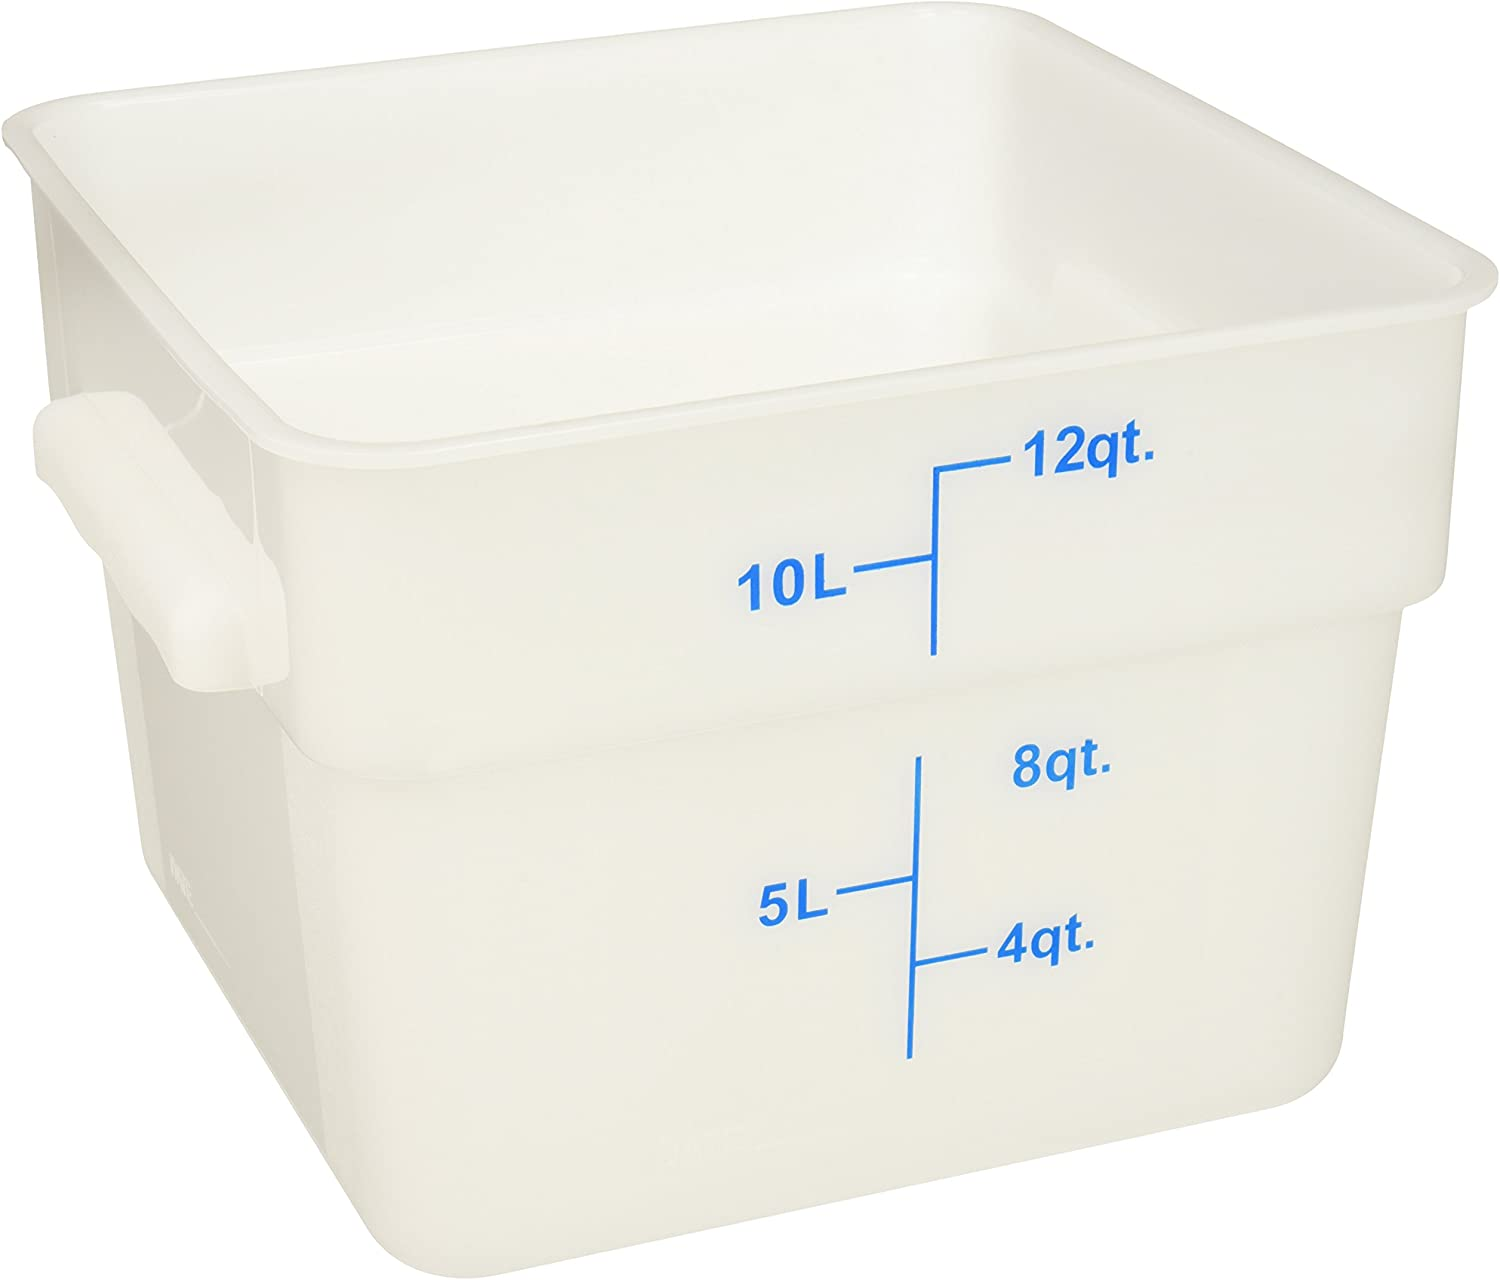 Winco Square Storage Container, 12-Quart, White